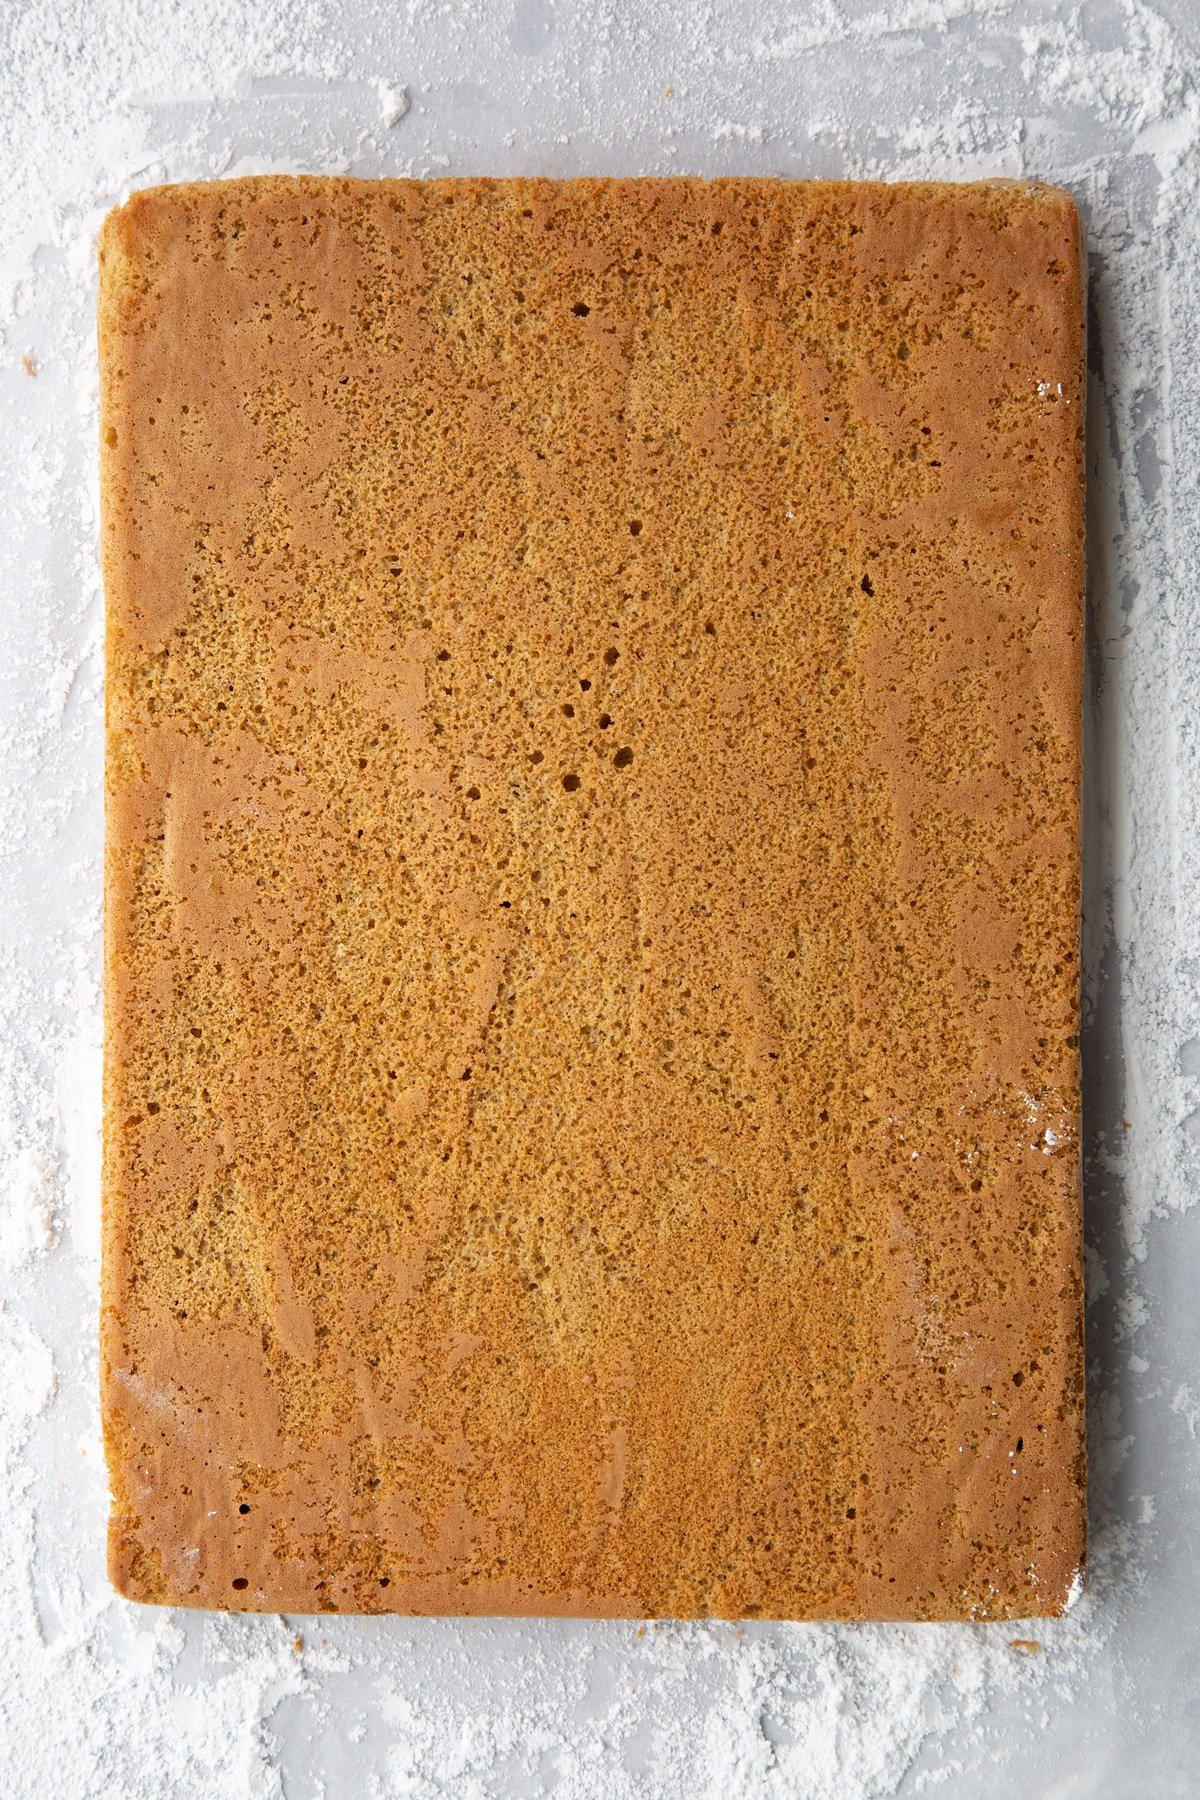 Baked gingerbread Swiss roll sponge, face down on a surface dusted with icing sugar. Backing paper removed.